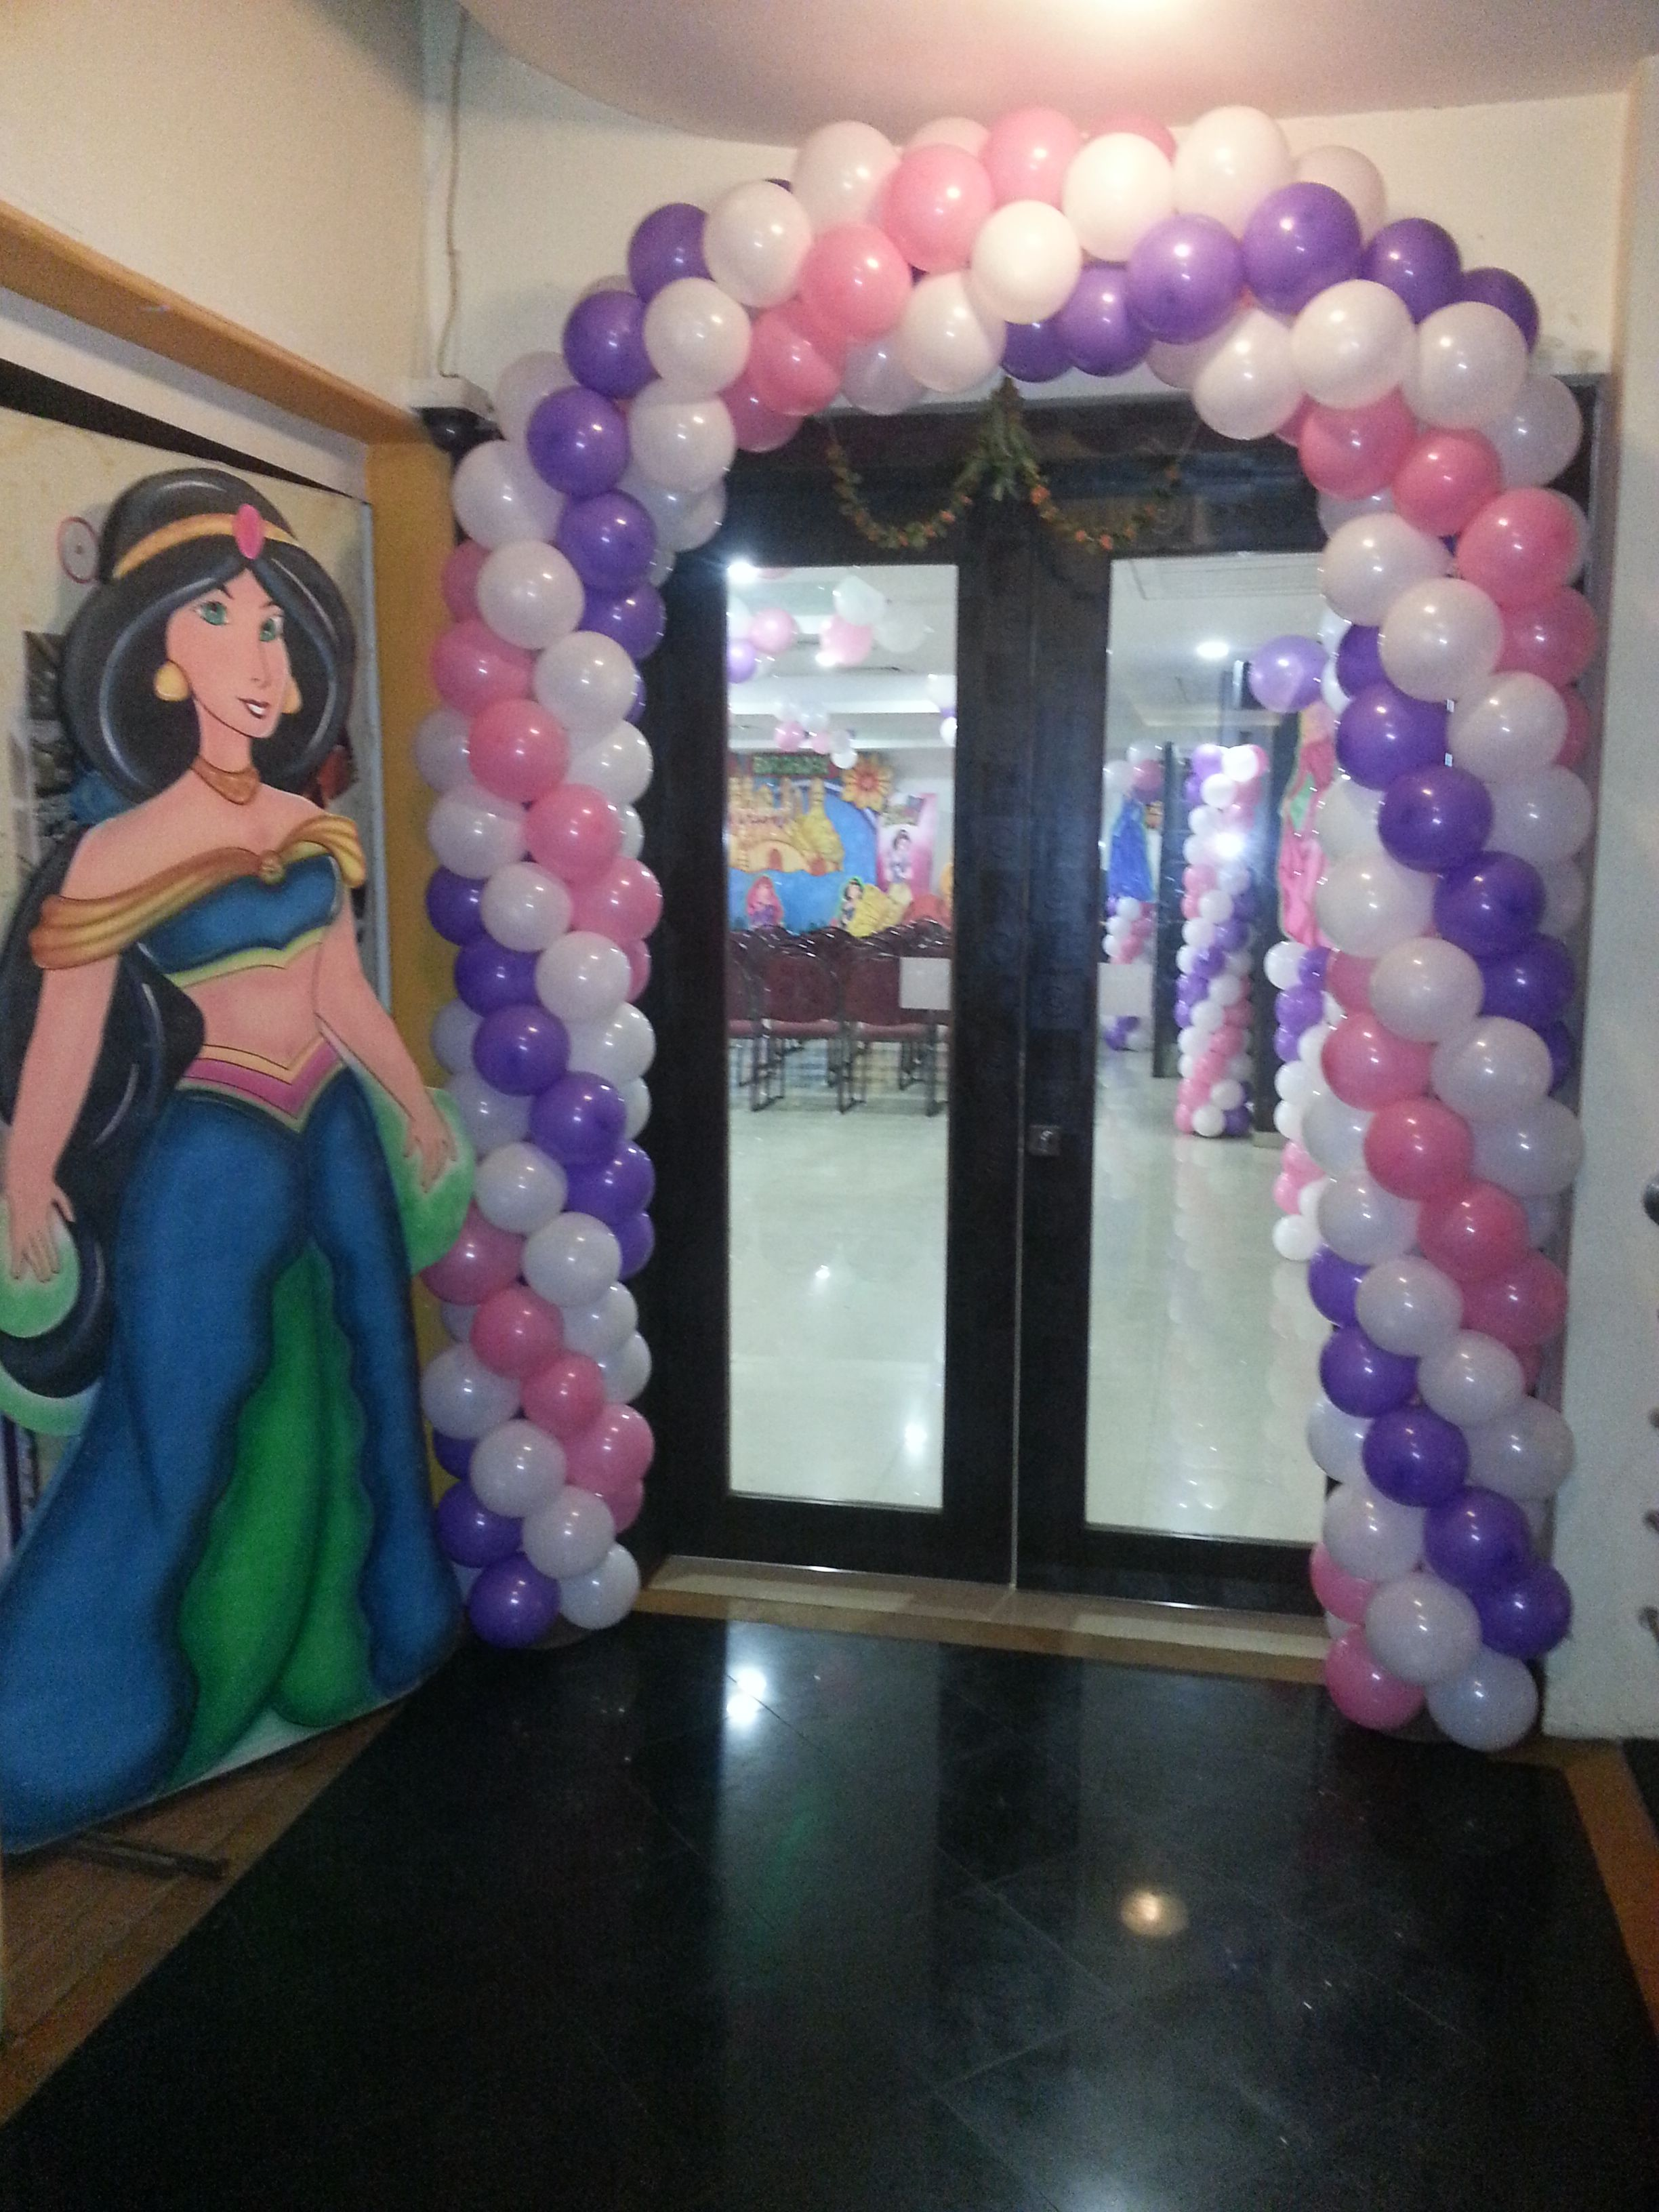 Bday DecorsBalloon DecorsBirthday Party OrganizersBalloon DecorationsBirthday Decorations In Hyderabad And SecunderabadParty PlannersBirthday